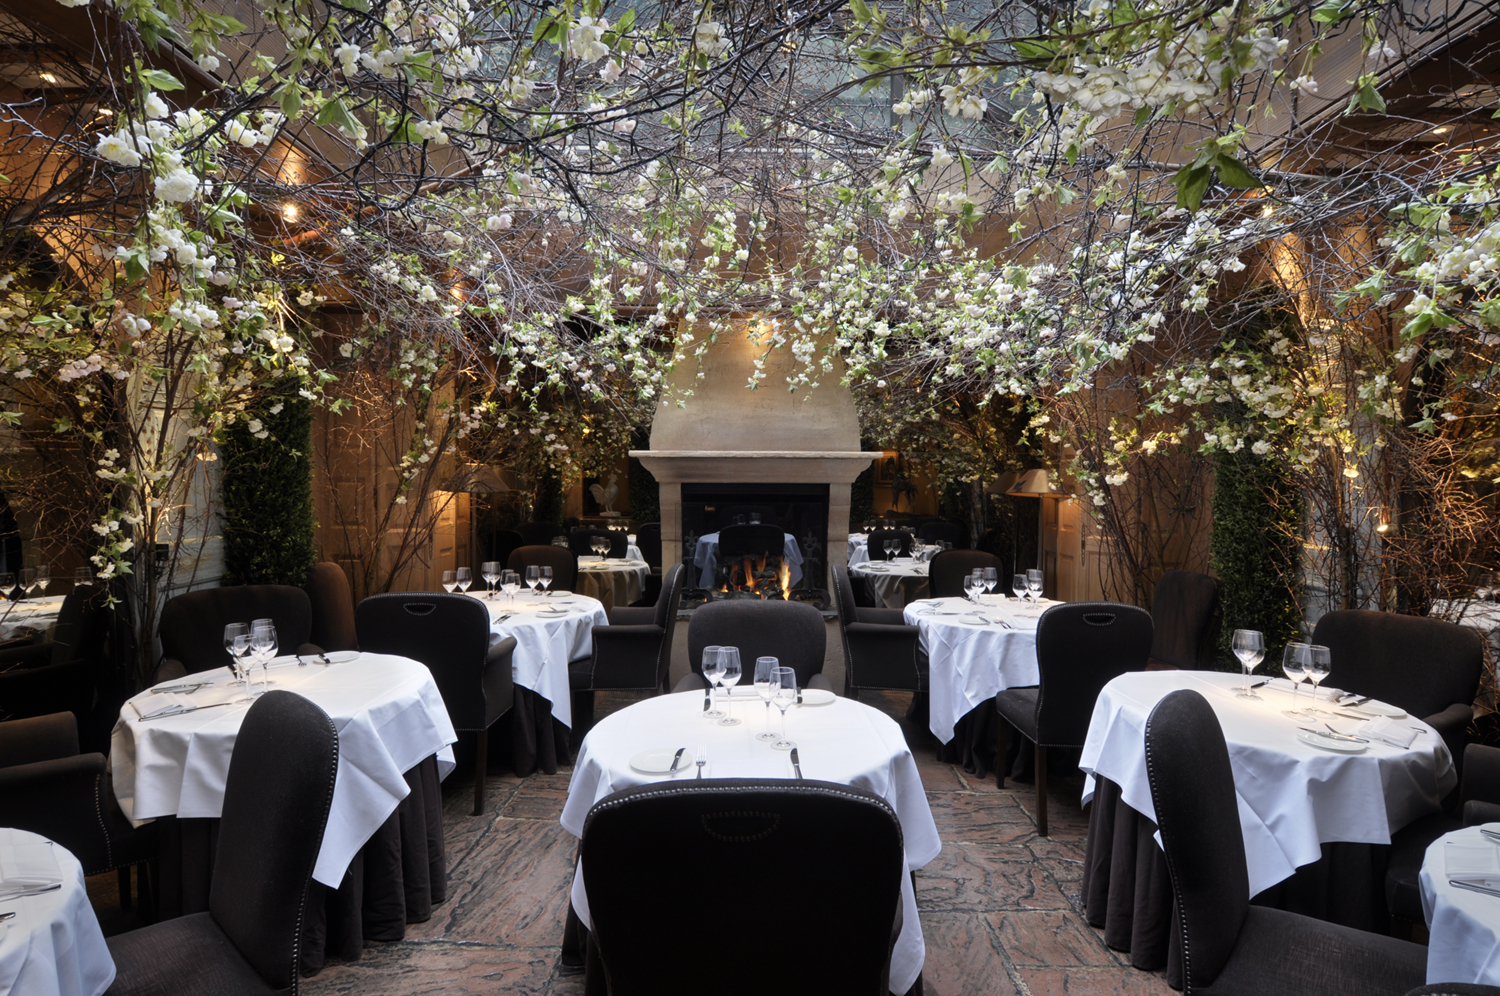 Clos maggiore romantisme covent garden lost in london for Cafe de jardin in covent garden